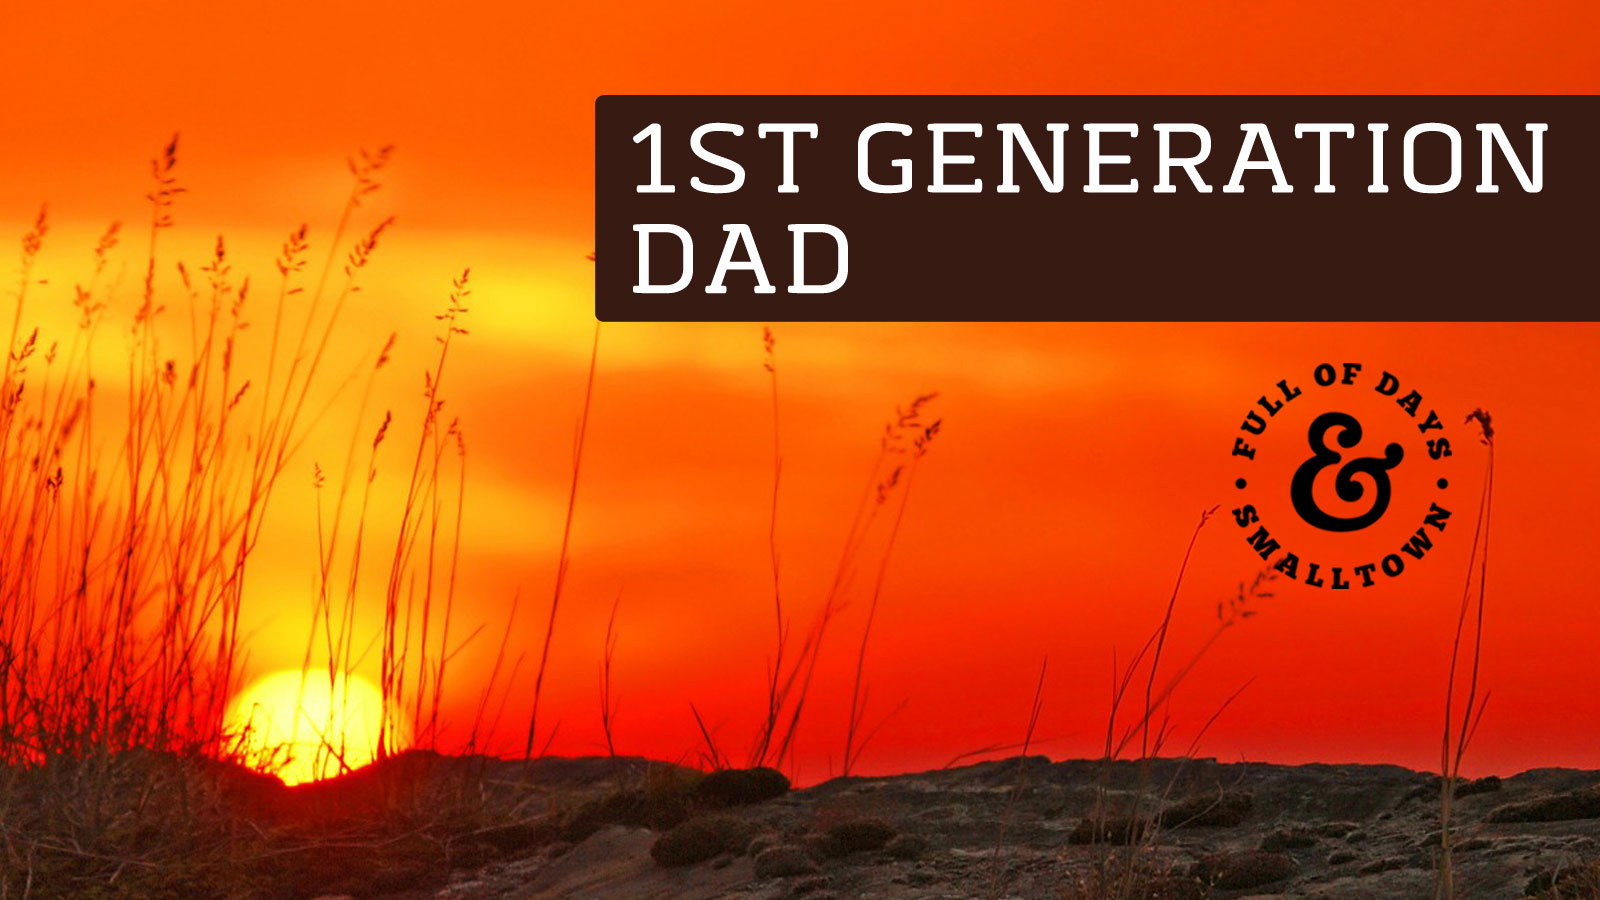 1st-Generation-Dad_Full-of-Days_Confused-and-Clear_1600-x-900